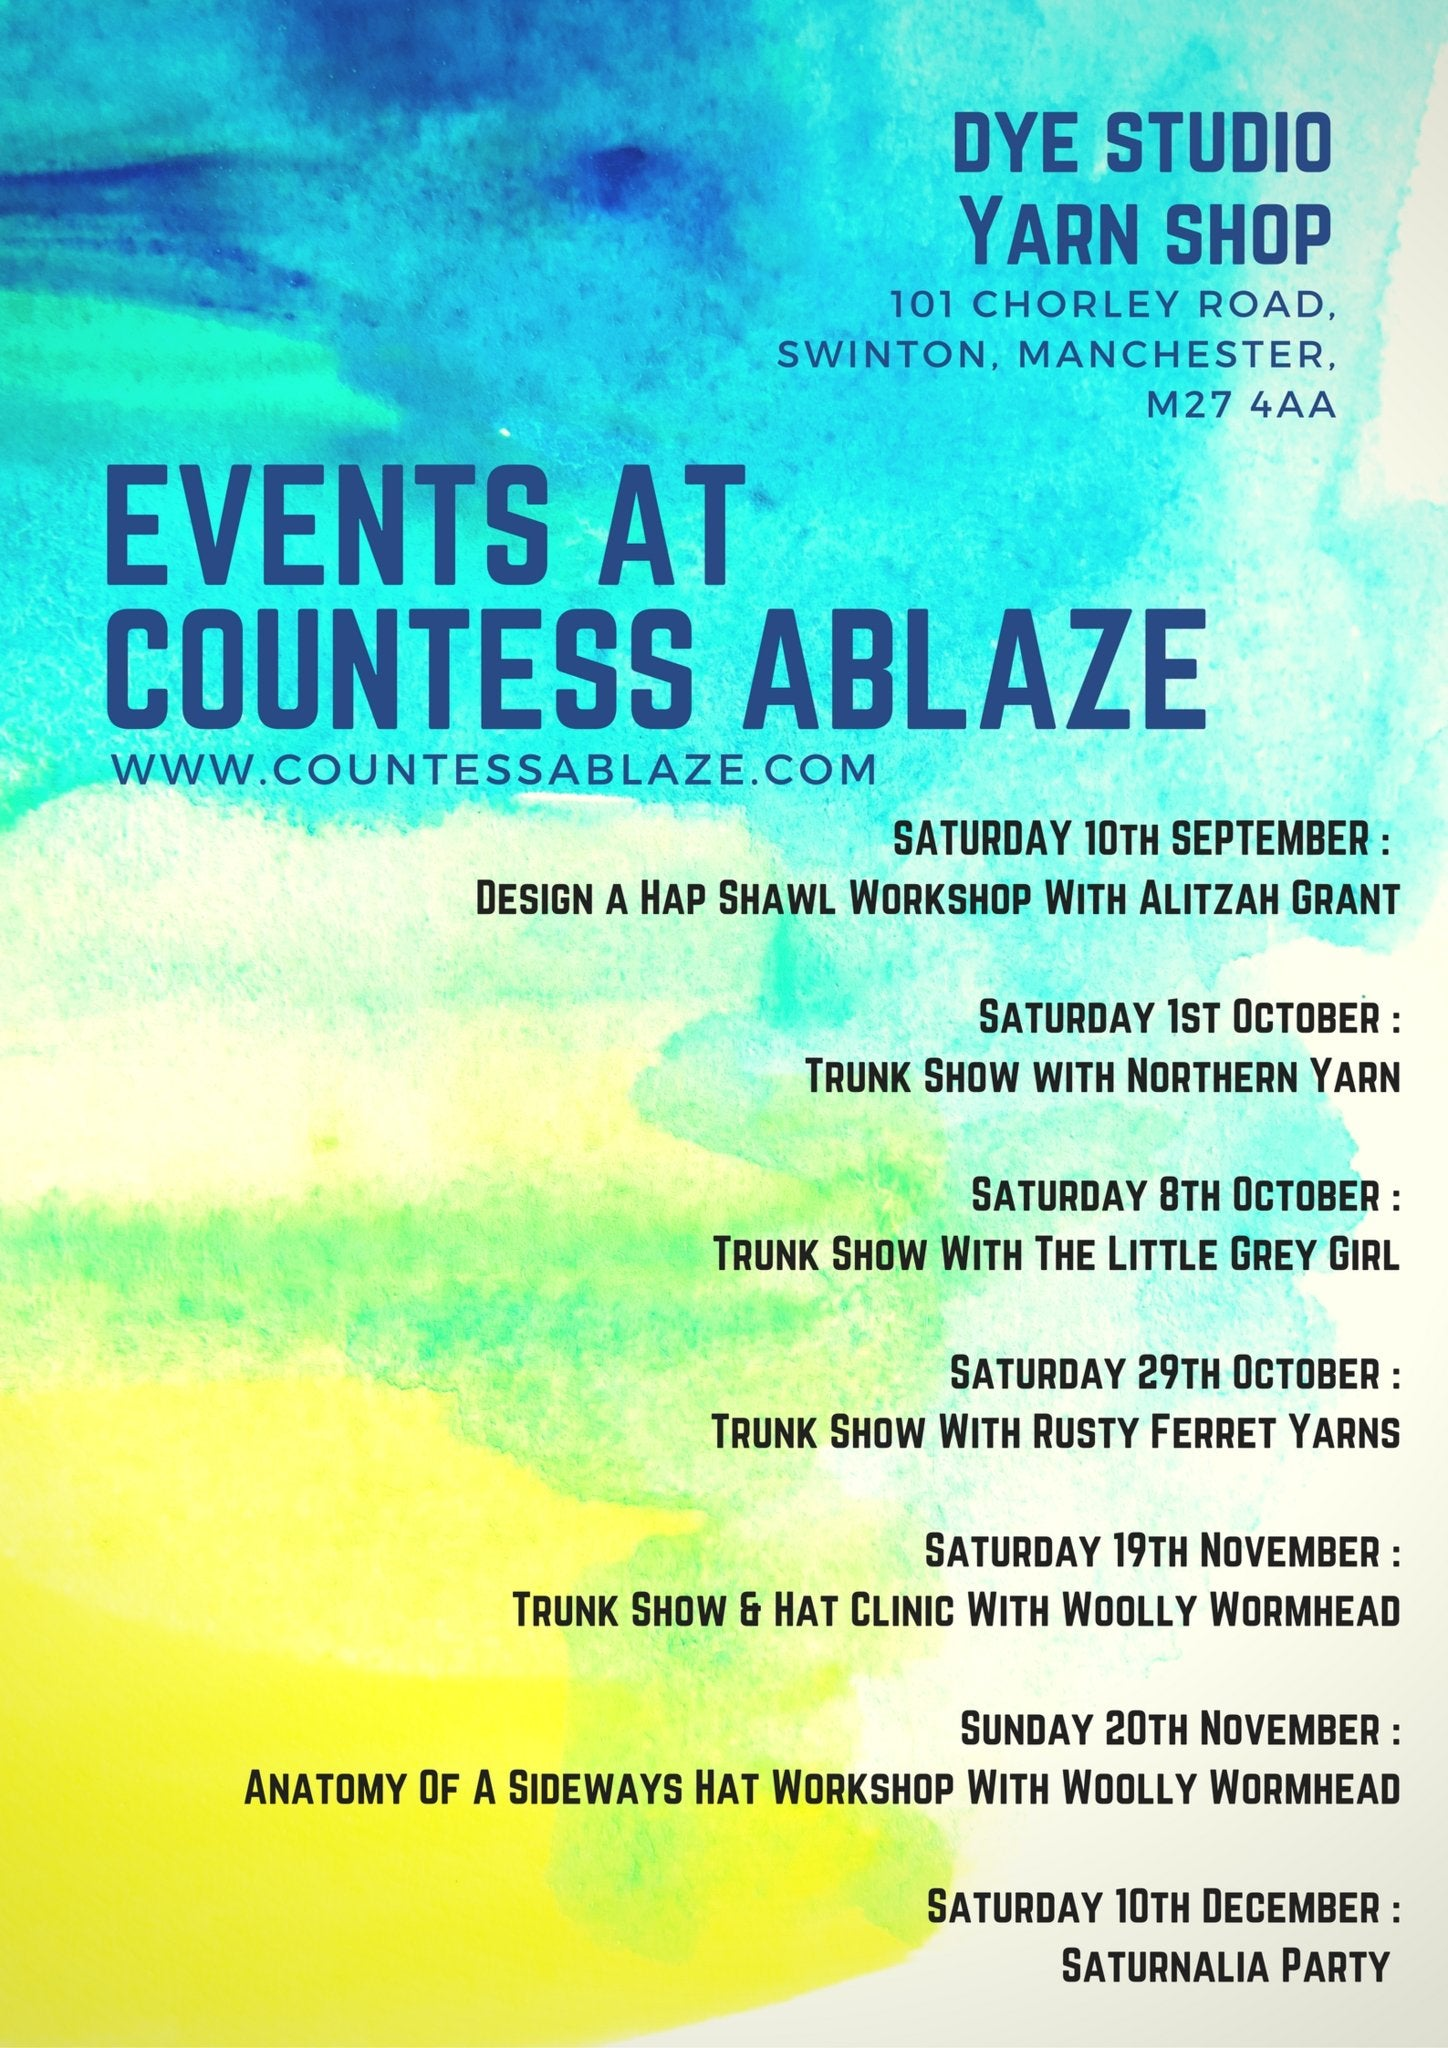 Autumn / Winter Events at Countess Ablaze | Countess Ablaze